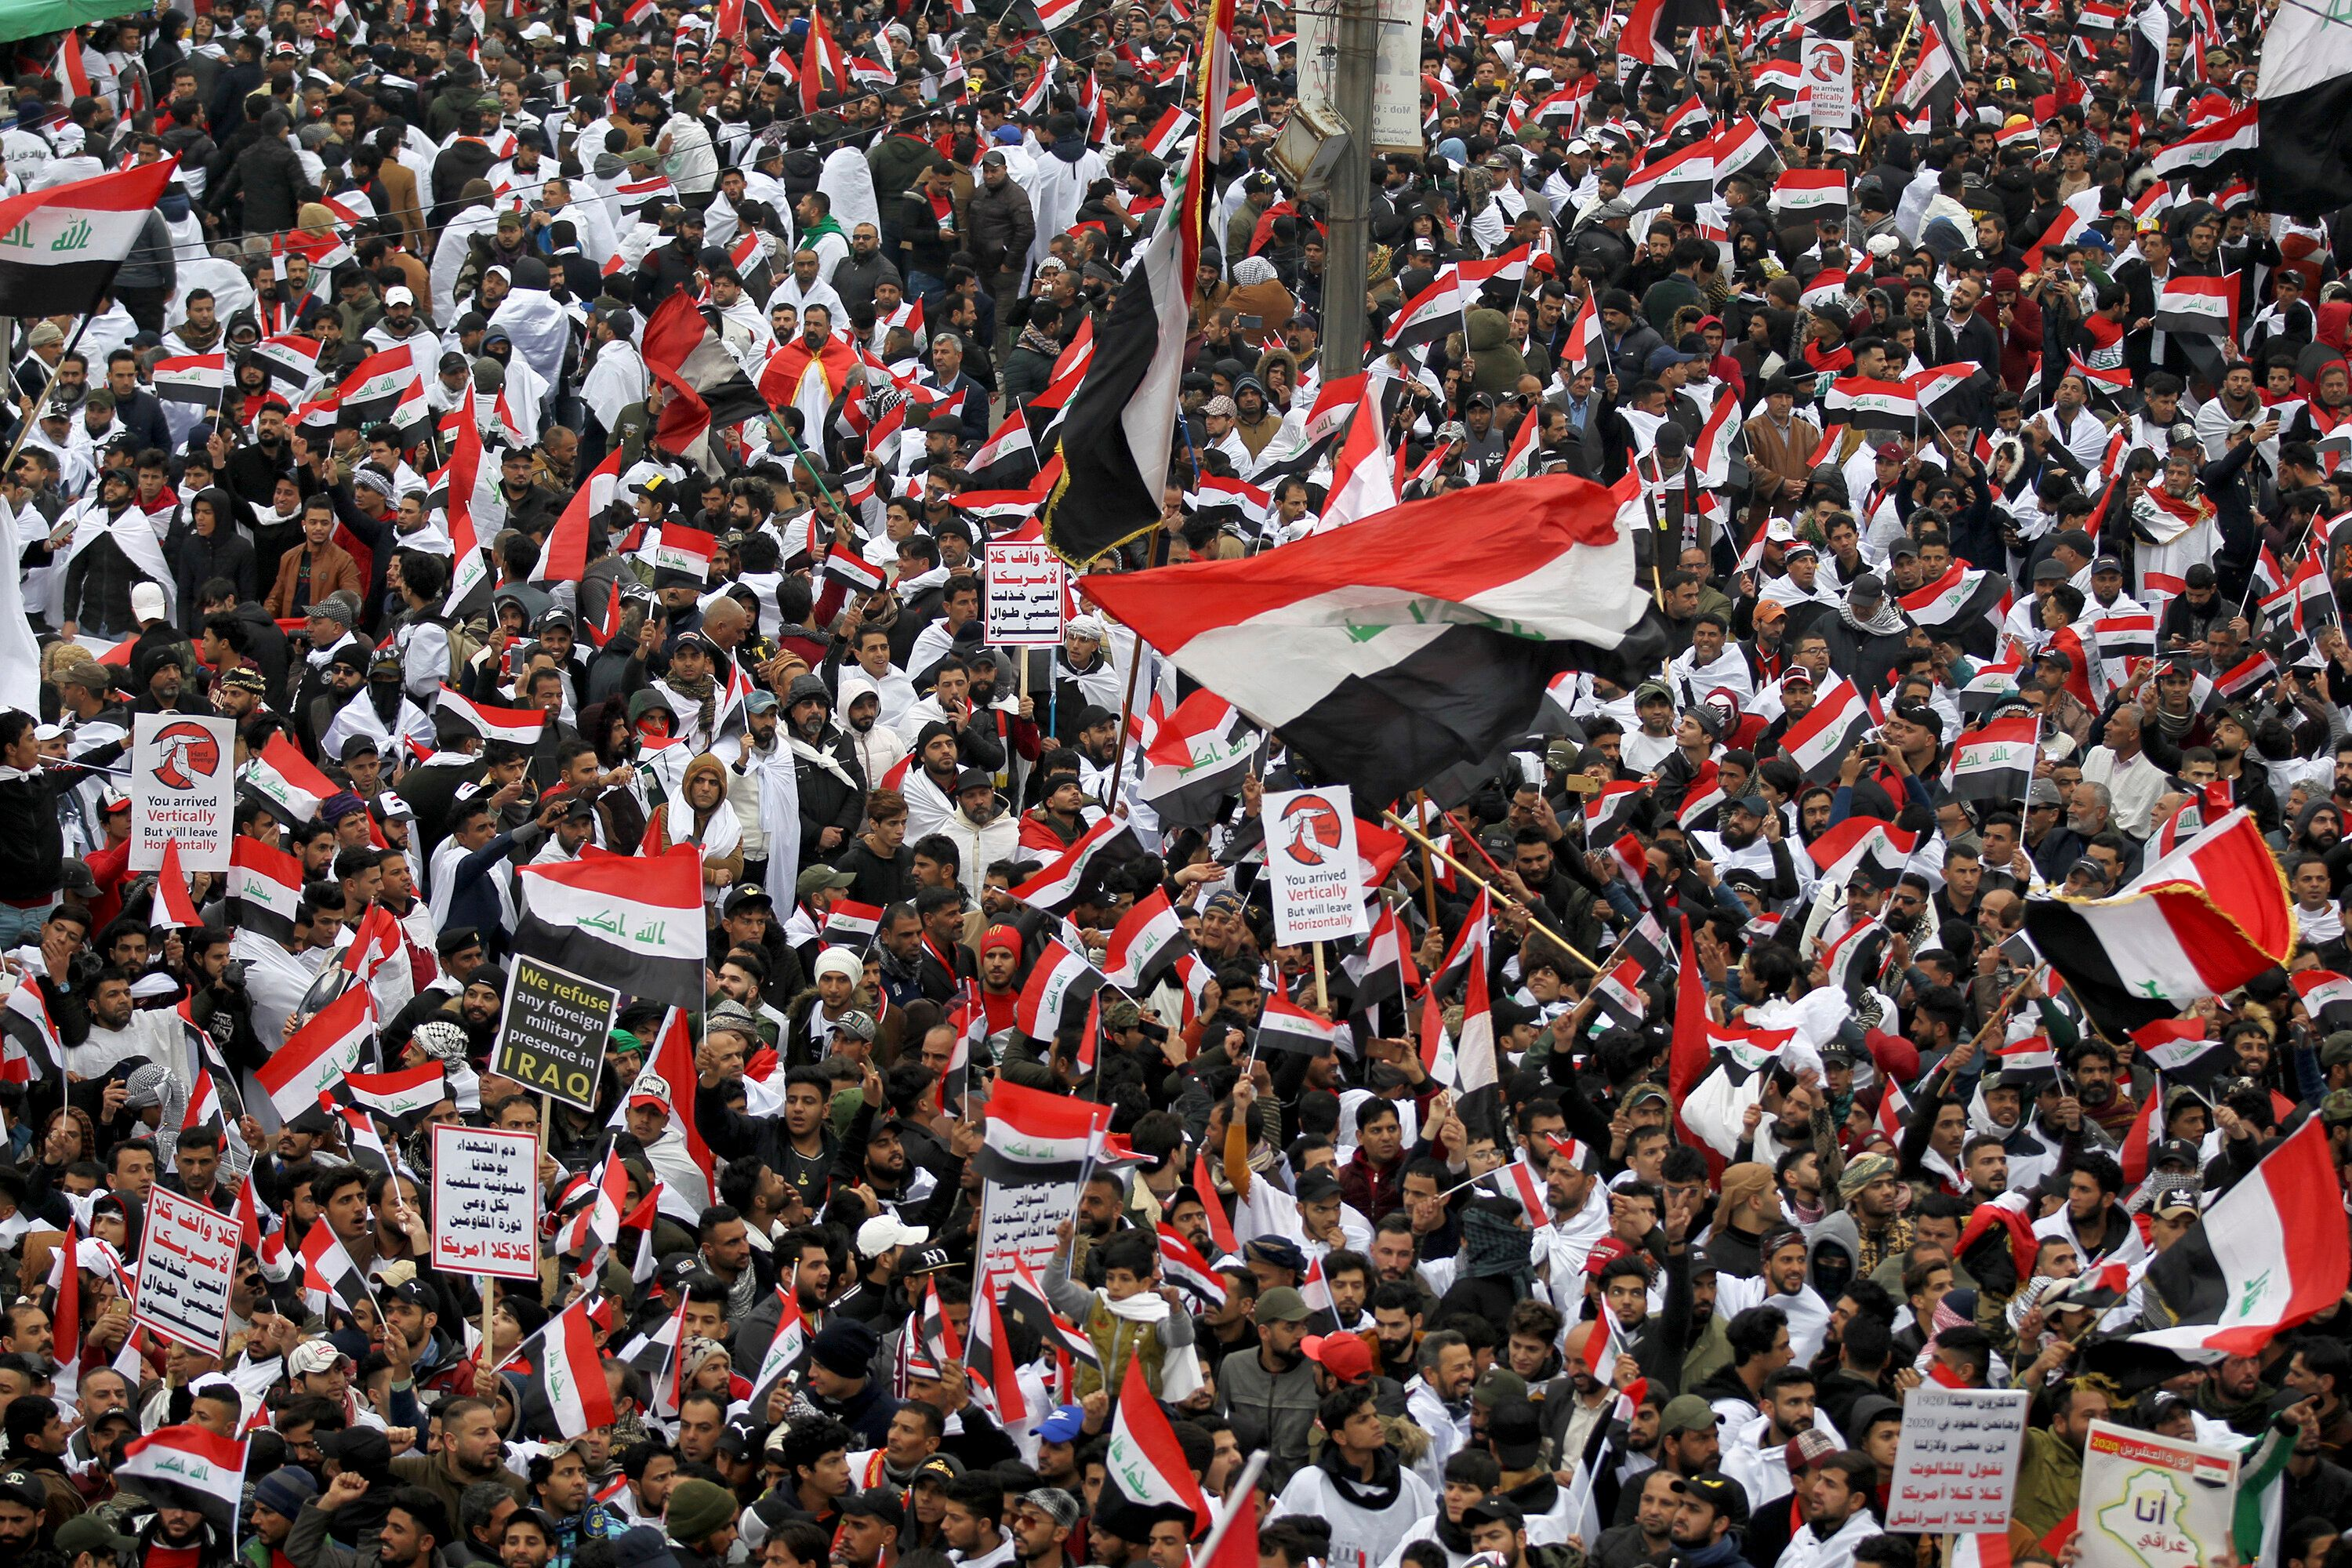 Thousands Rally In Baghdad To Demand U.S. Troops Leave Iraq